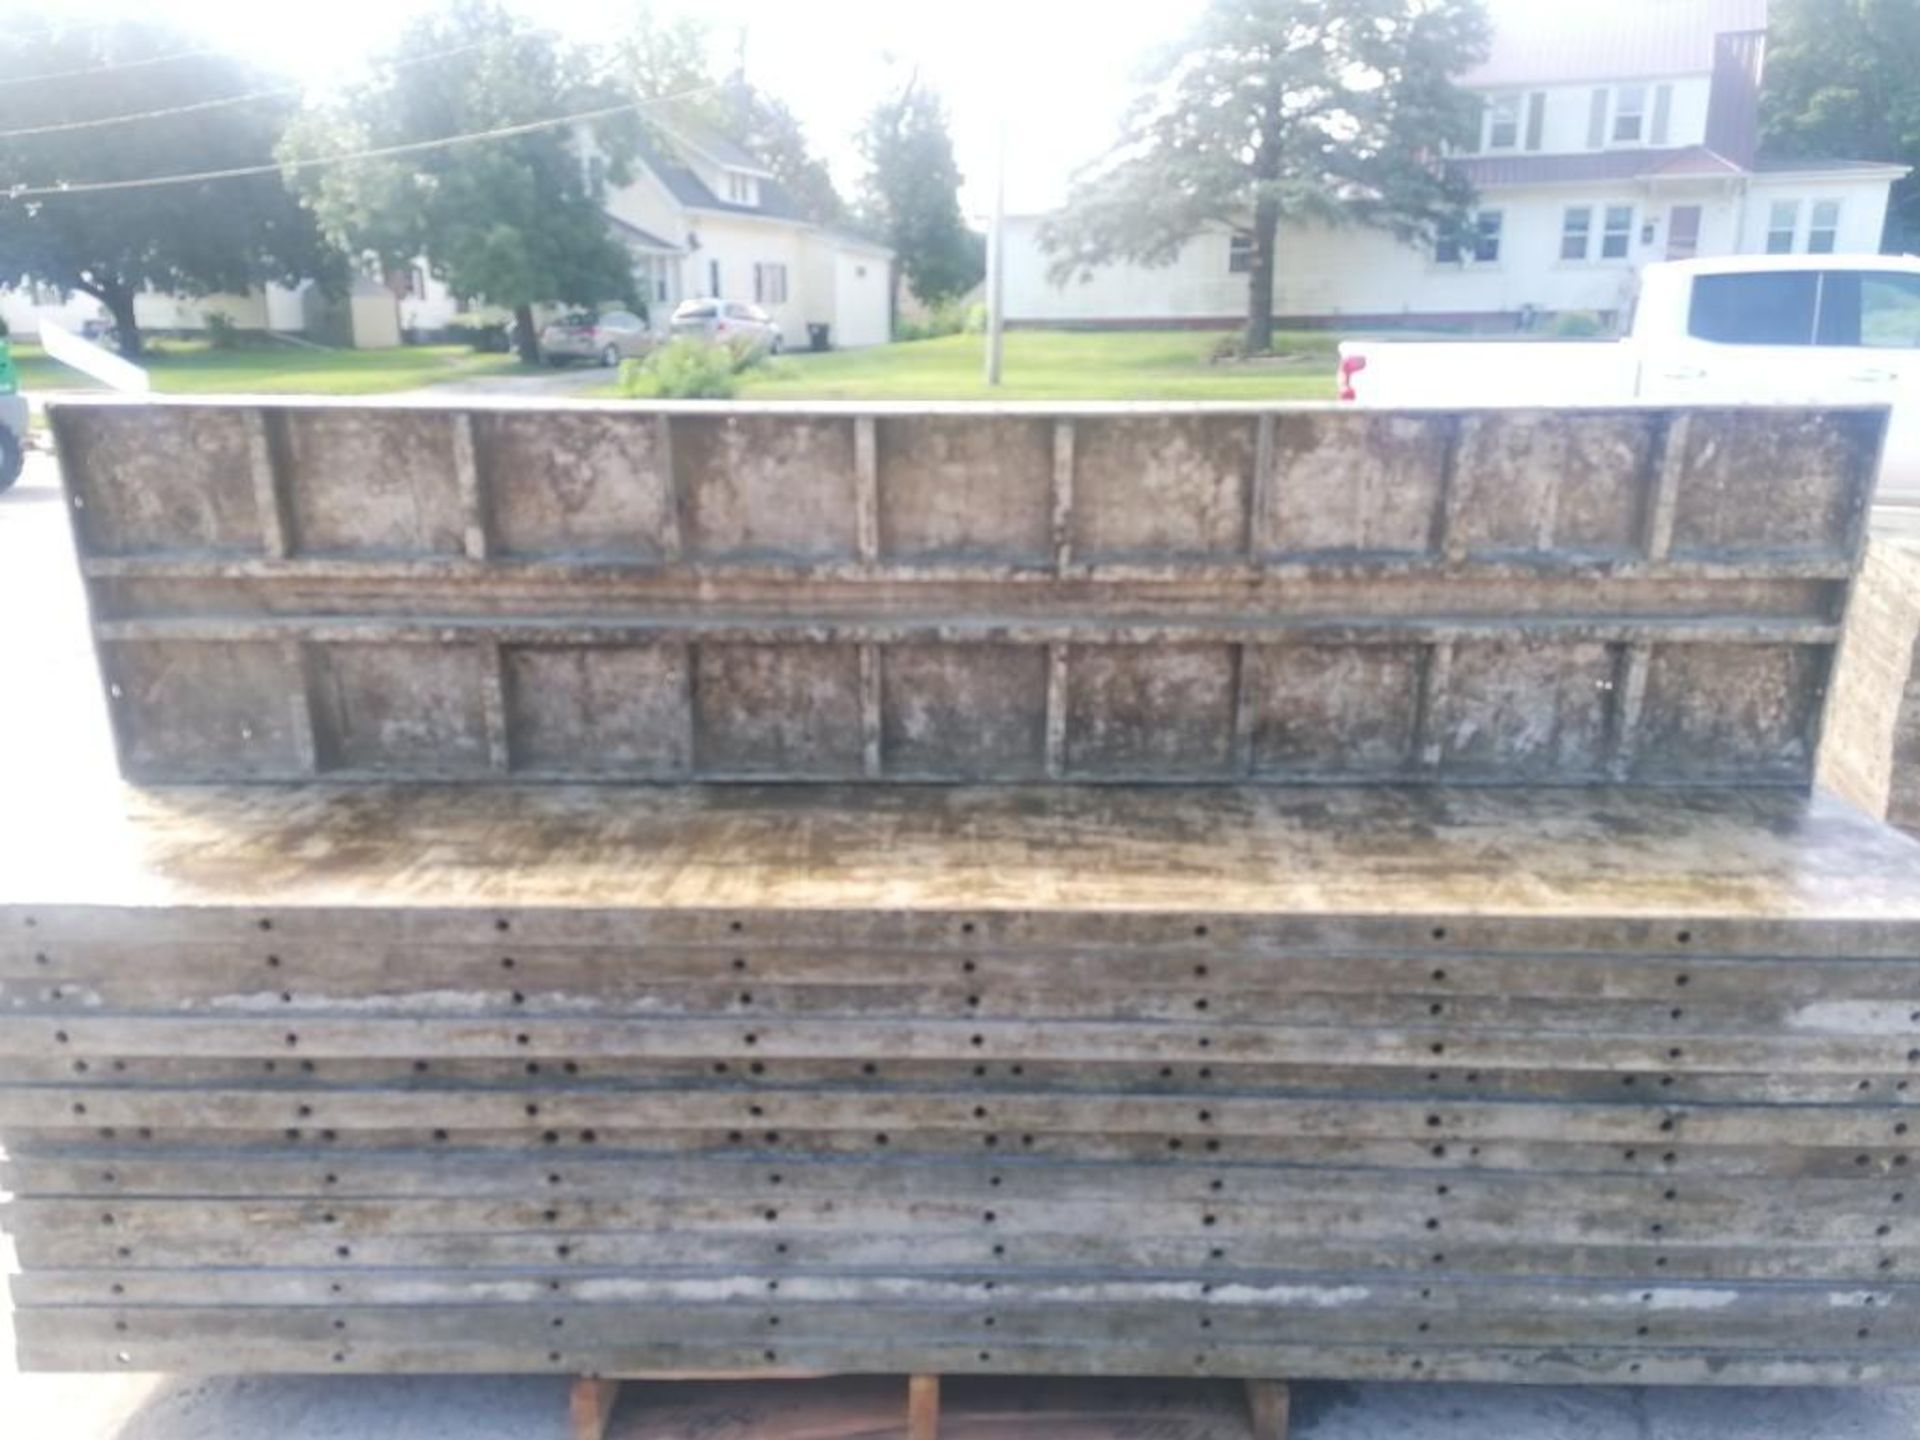 Lot 150 - (30) 2' x 9' Wall-Ties Aluminum Concrete Forms, Laydowns, Smooth 6-12 Hole Pattern. Located at 301 E